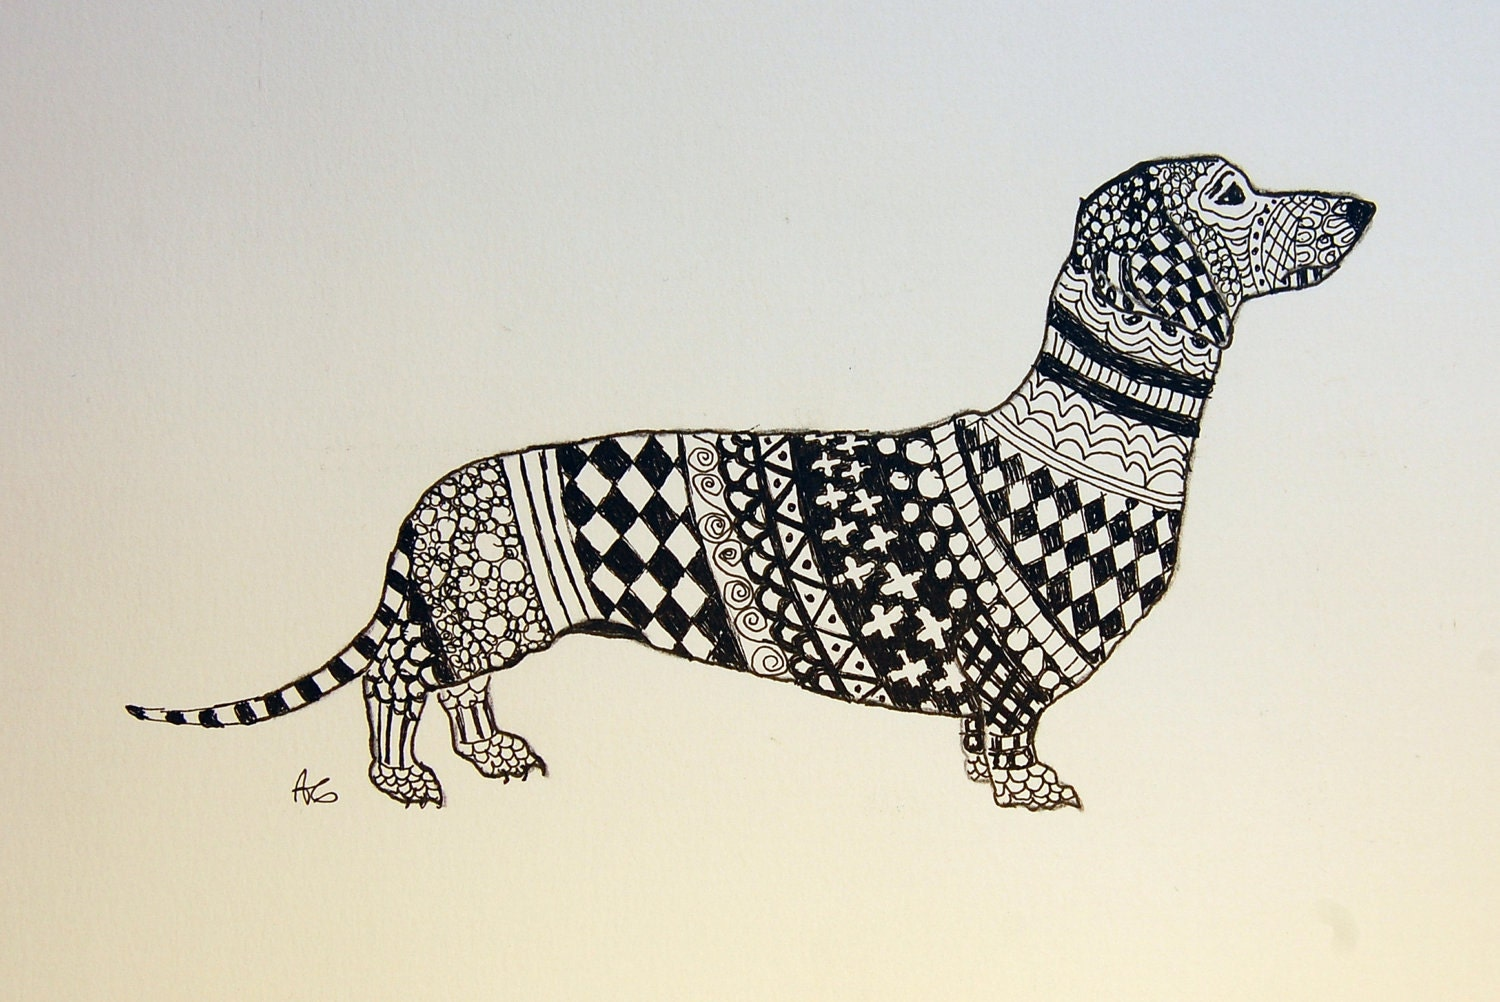 Dachshund Zentangle Original Pen And Ink Drawing With By